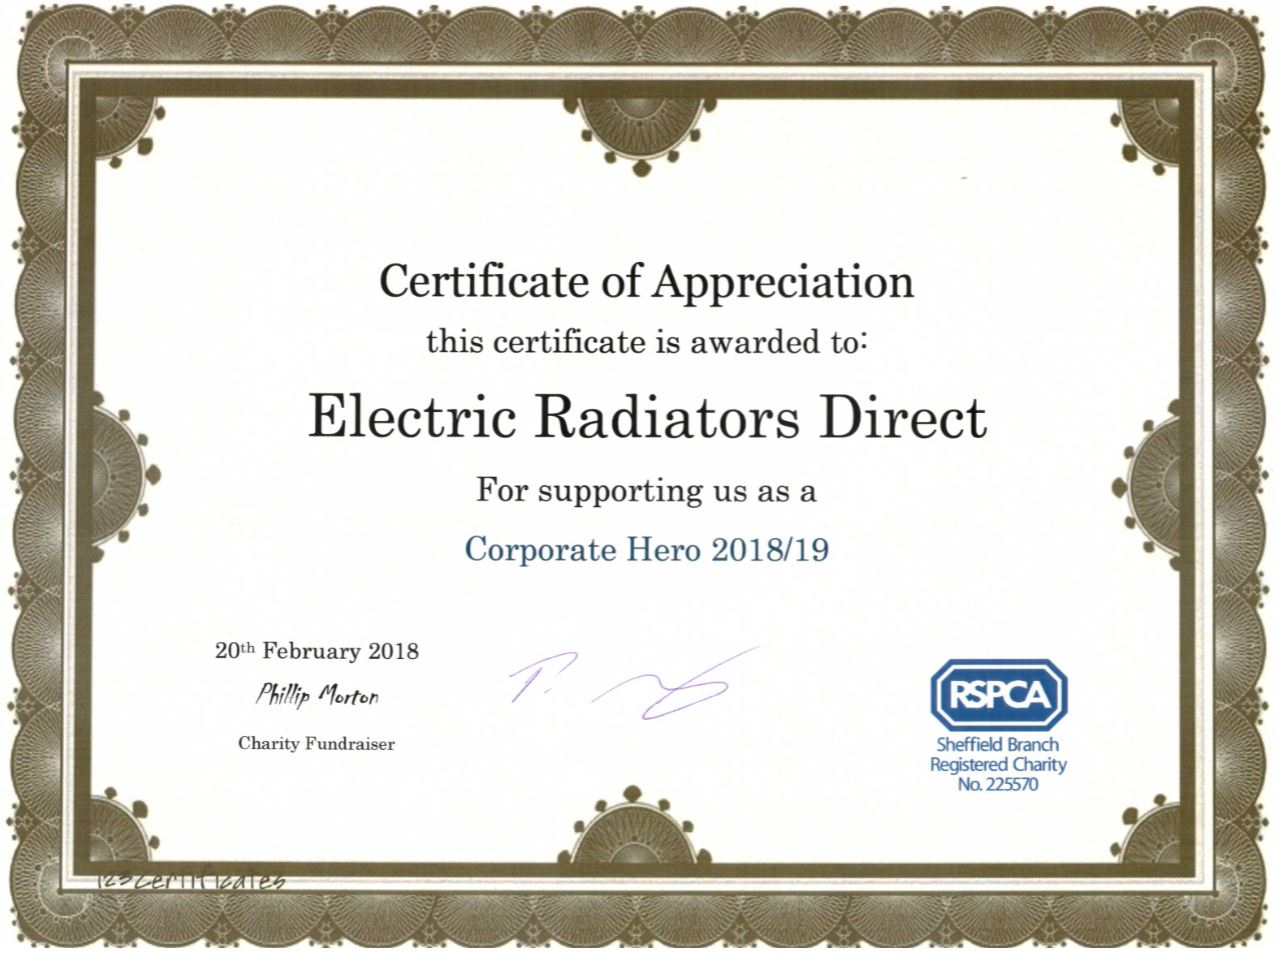 Our Certificate of Appreciation from the RSPCA